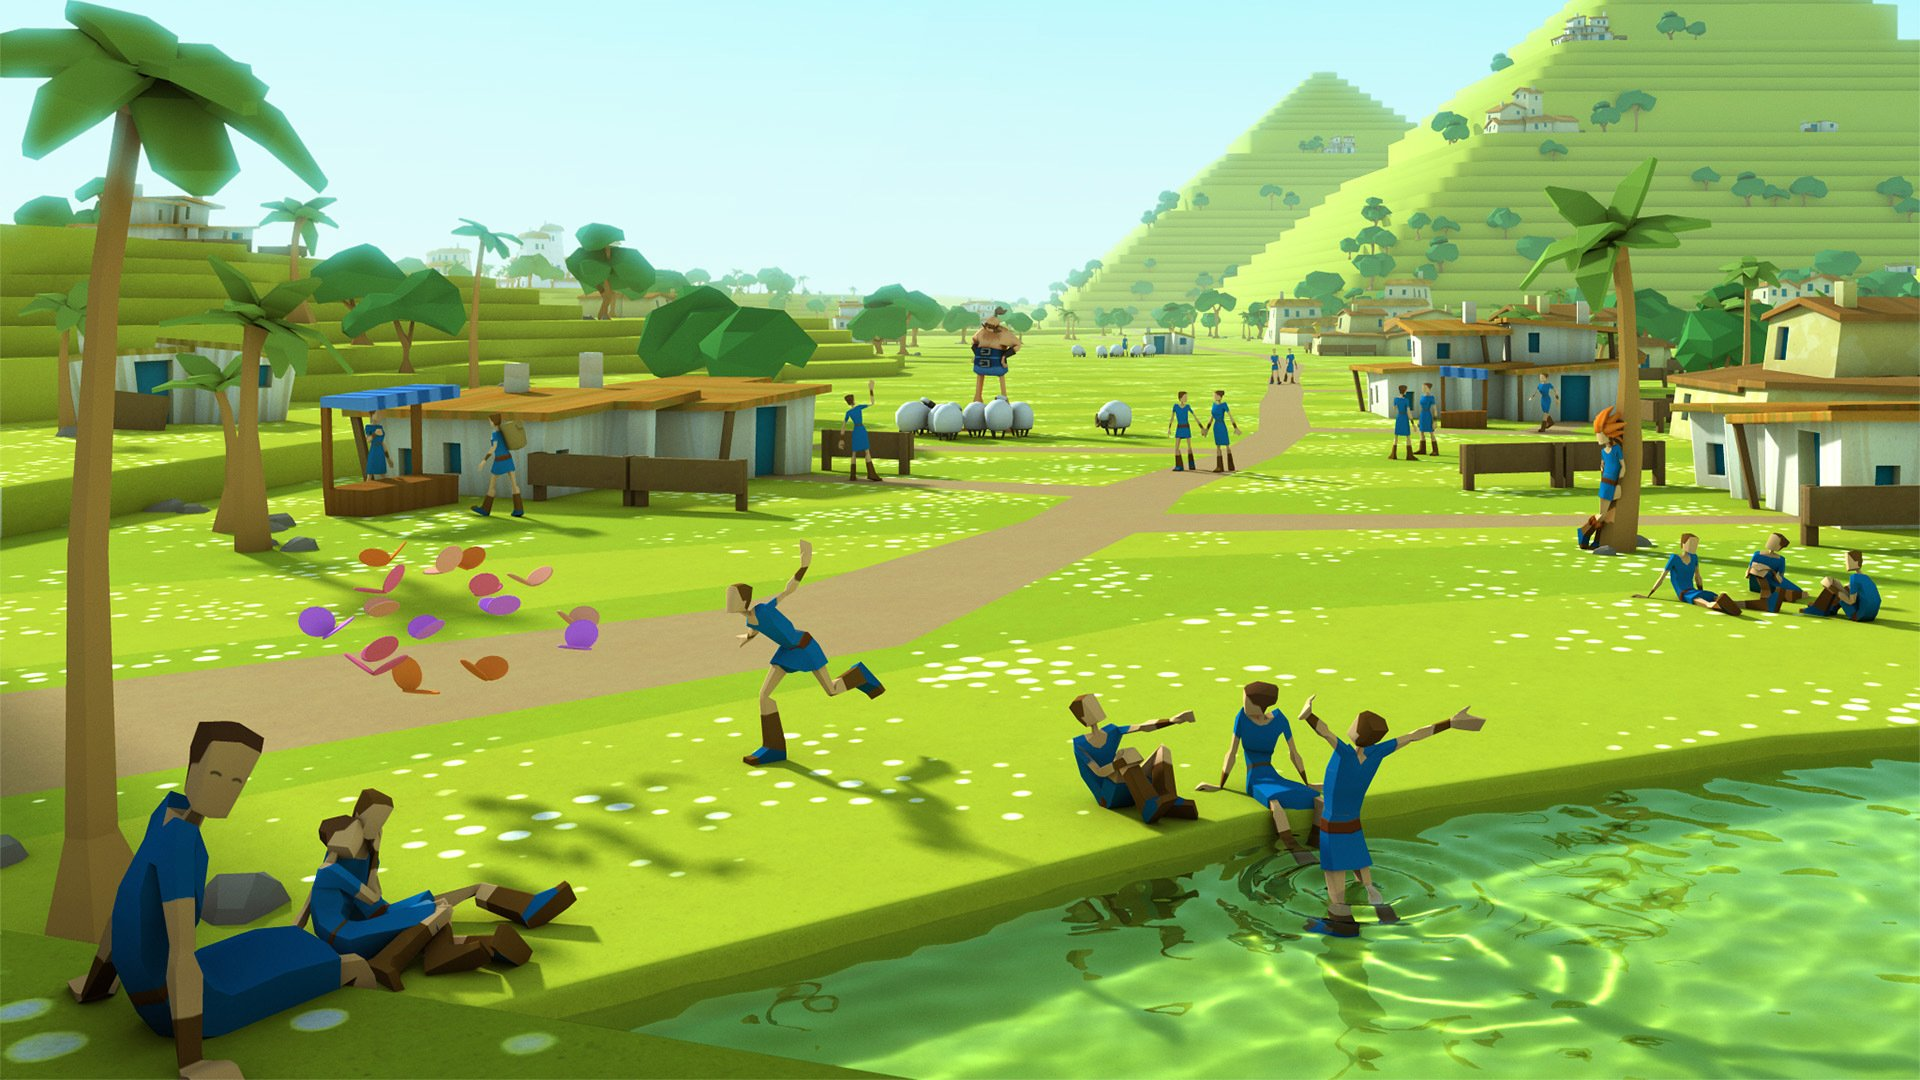 Godus Pyramids oasis by Gould58 1920x1080